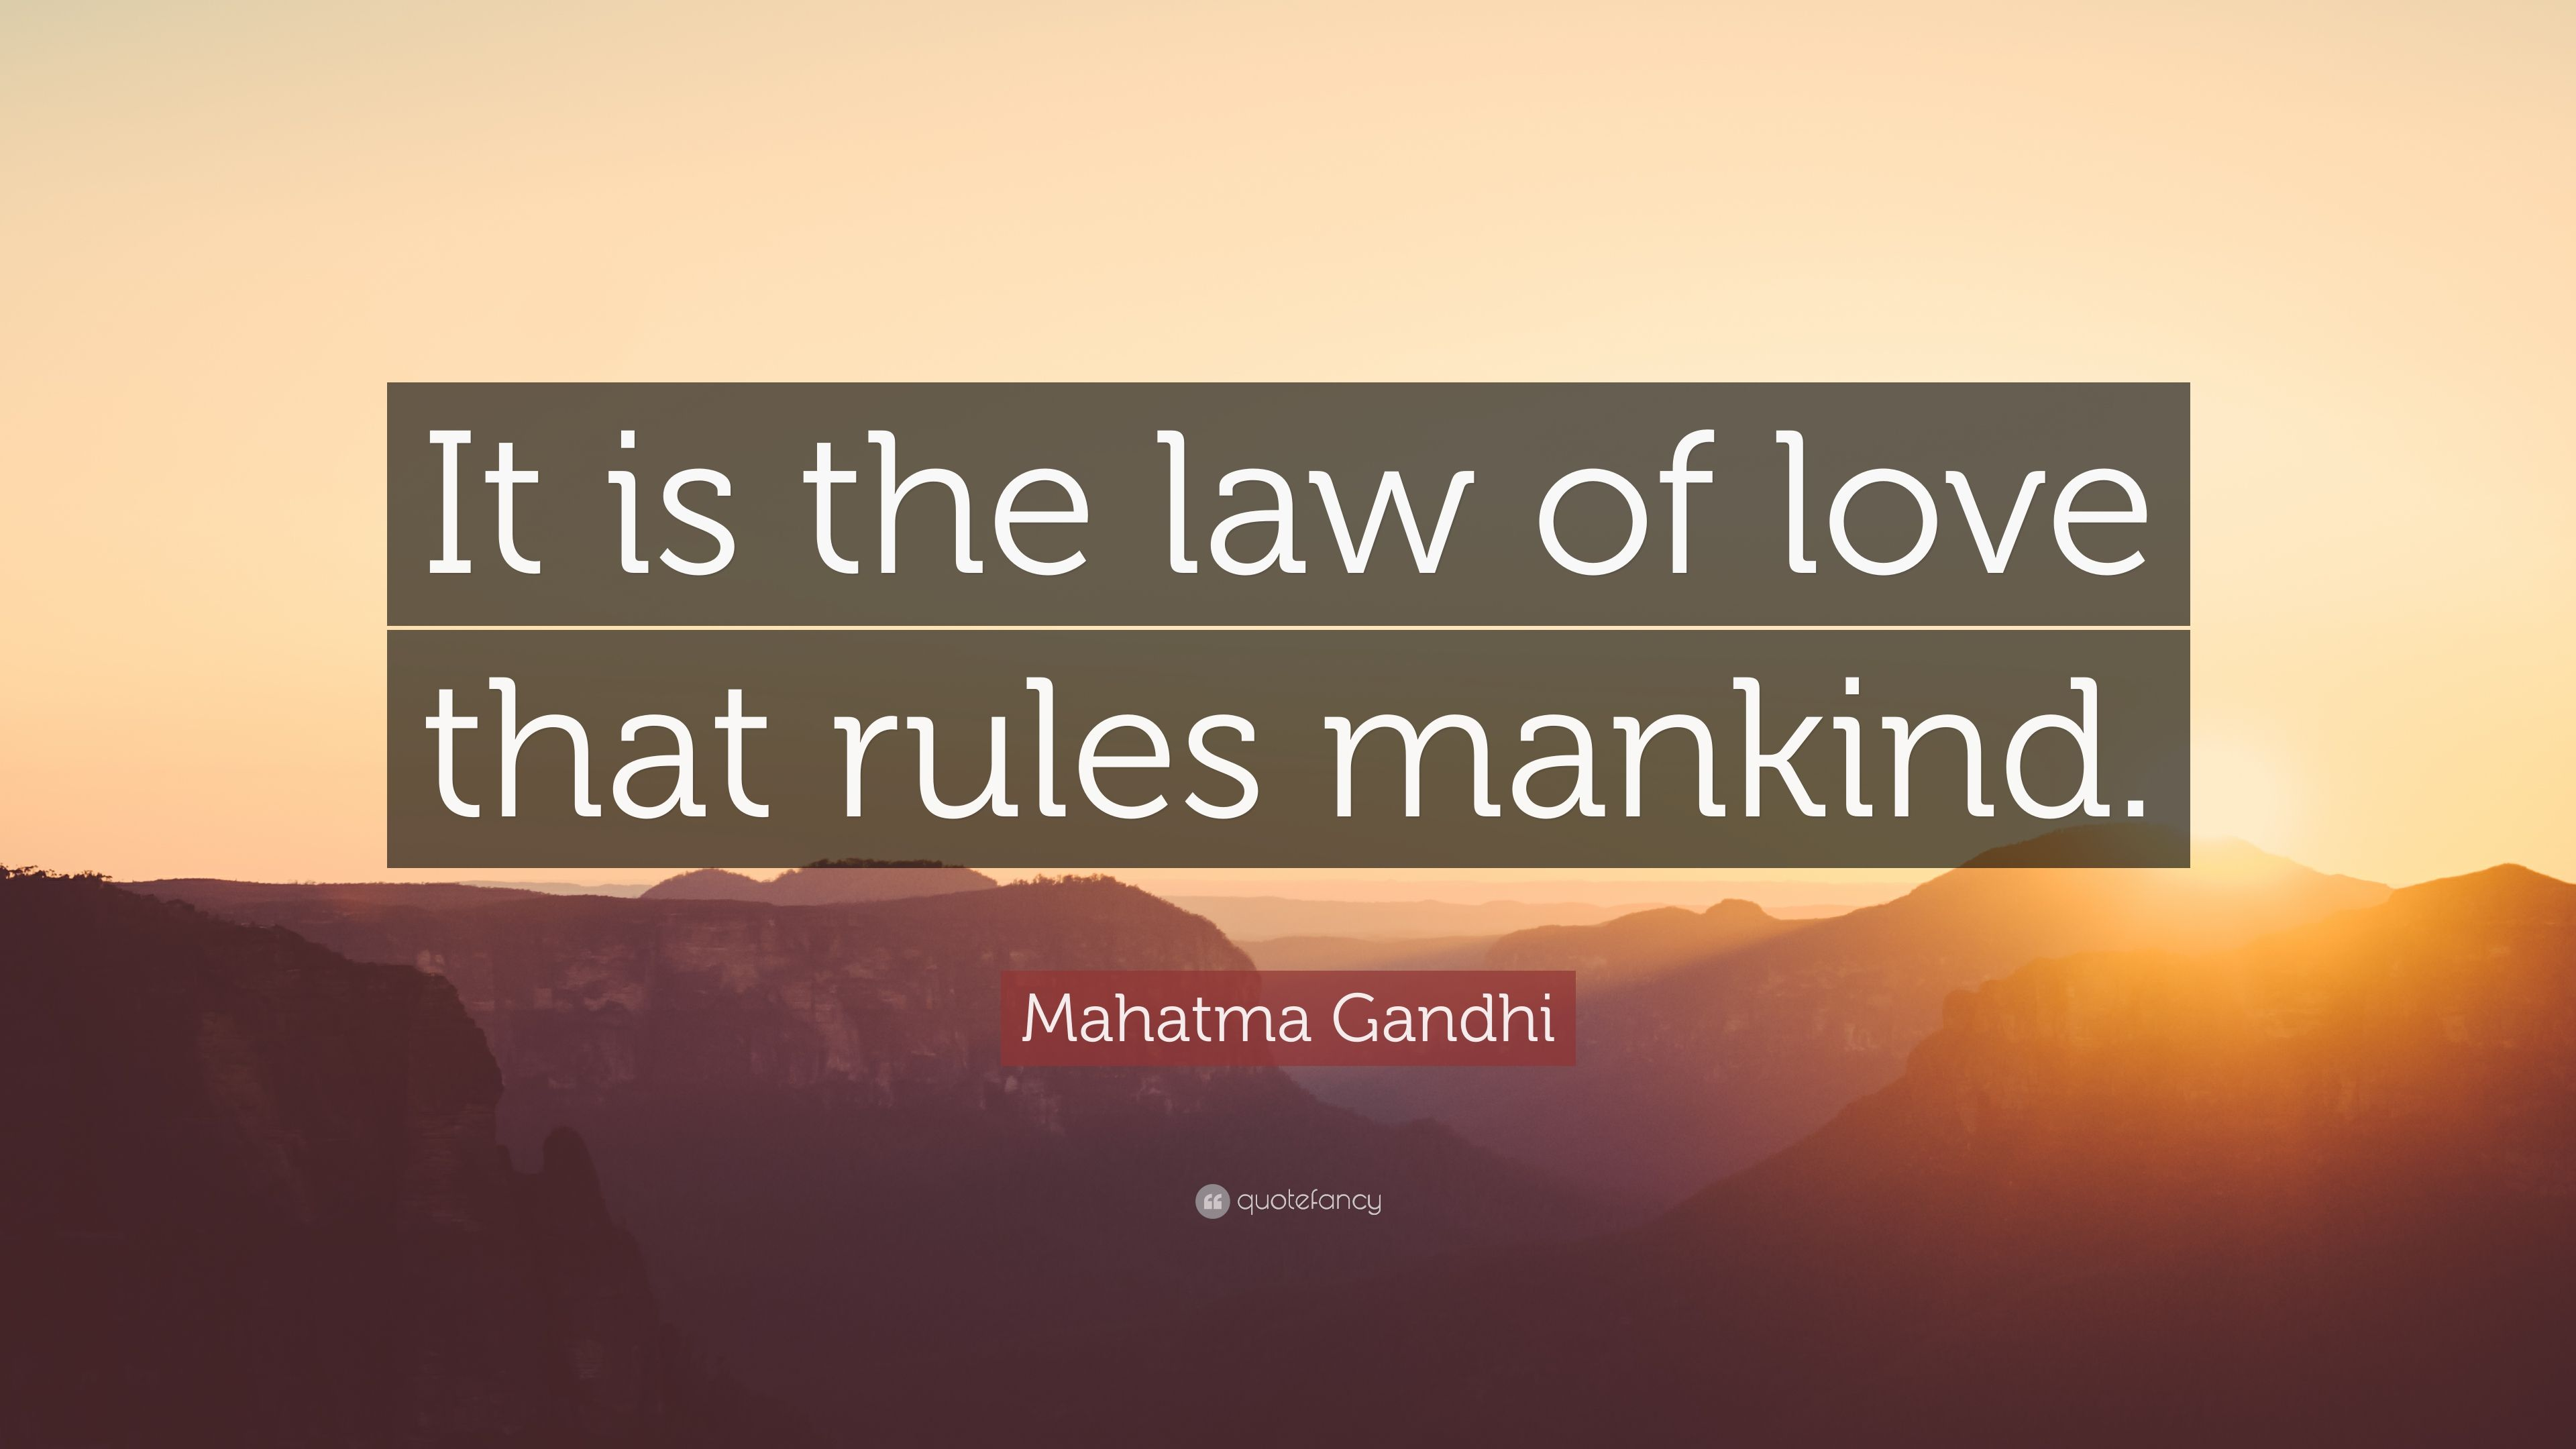 """Mahatma Gandhi Quotes On Love Mahatma Gandhi Quote """"It Is The Law Of Love That Rules Mankind"""